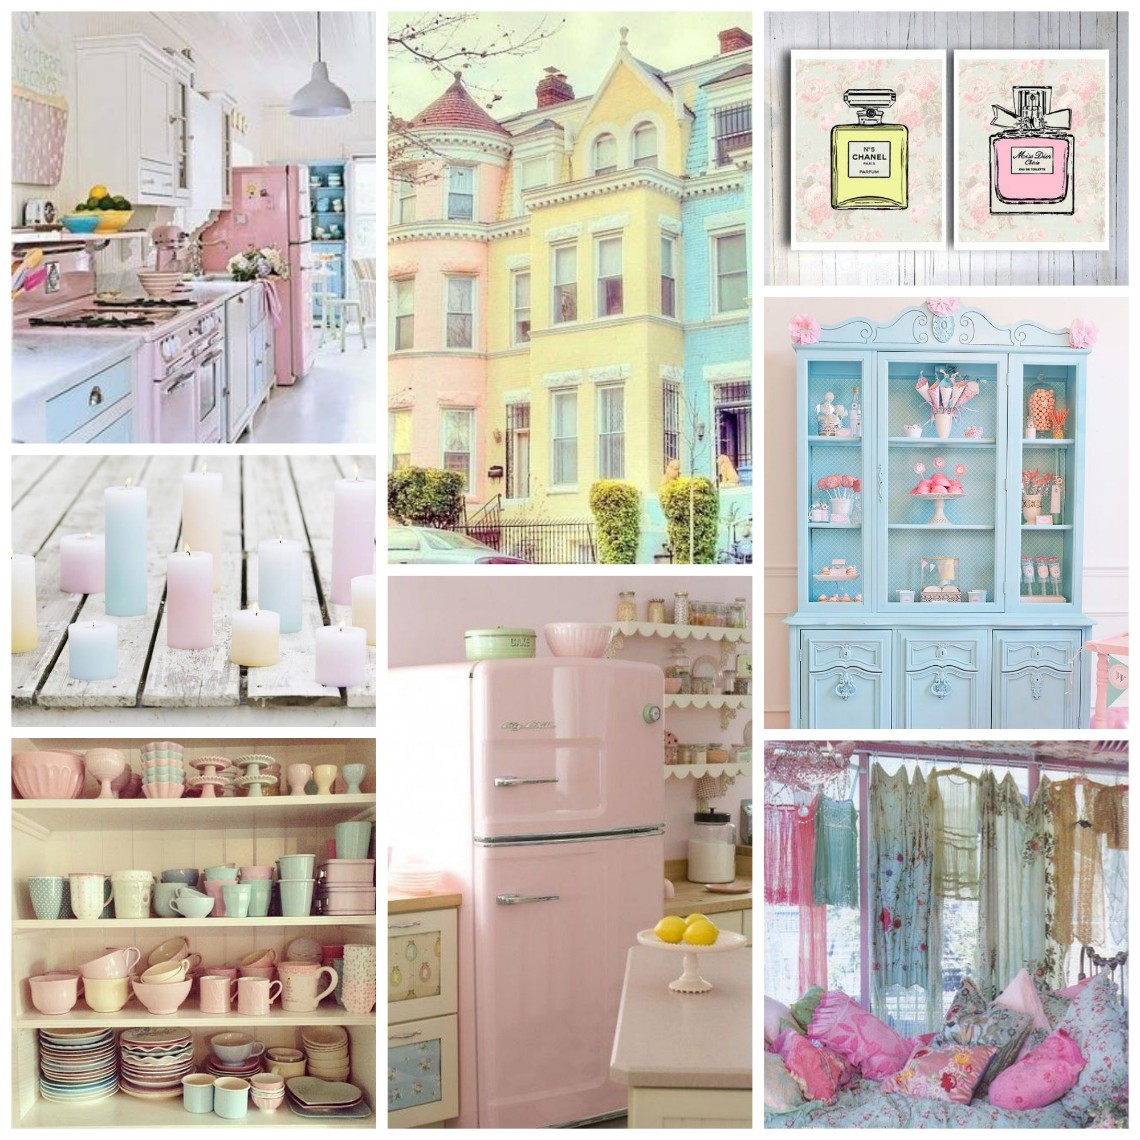 sale retailer 18aac 3a46a Trend Alert: Pastel Trend In Home Decor | Modern Home Decor